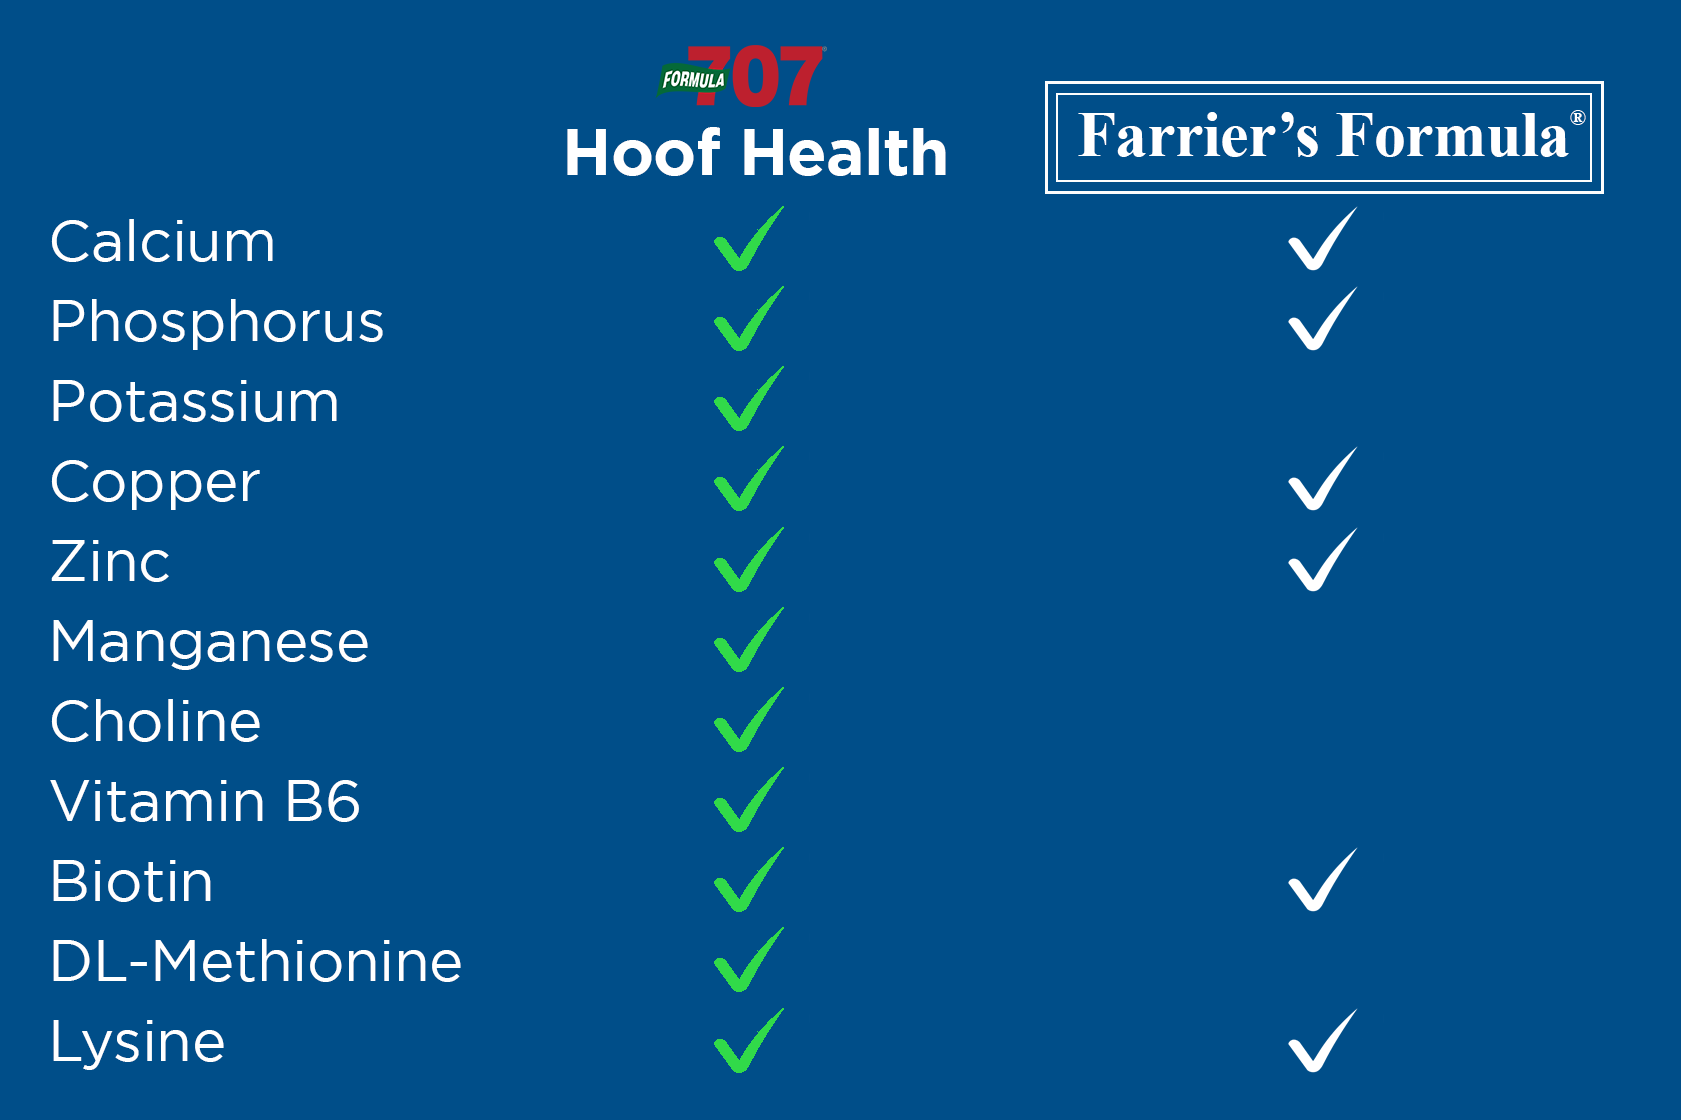 chart of the ingredients of Hoof Health vs Farrier's Formula with Hoof Health having far more